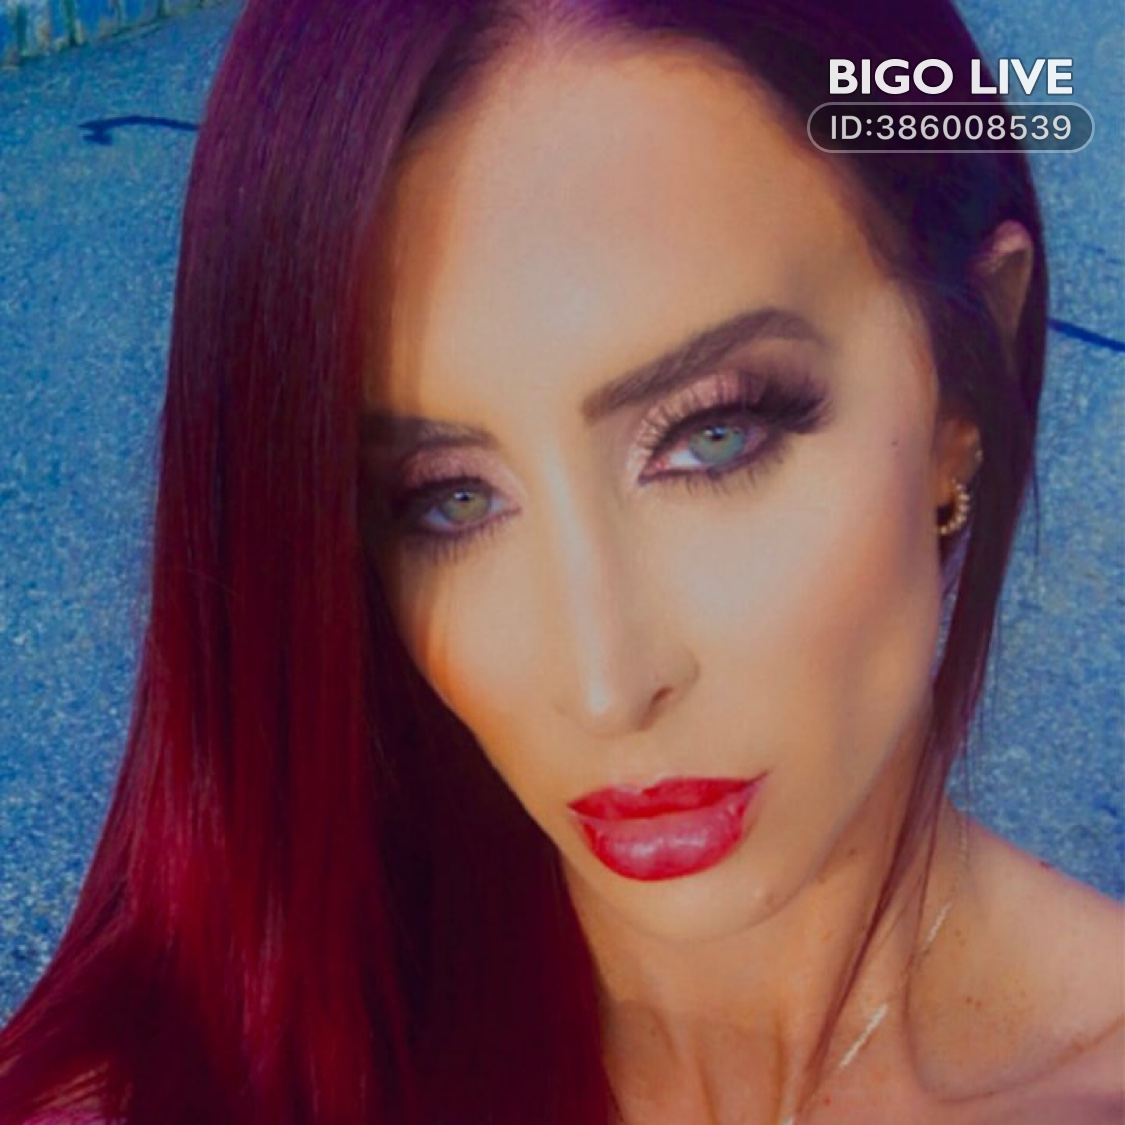 Come and see GIANA BELA's LIVE in #BIGOLIVE: #chat  CIAO BELA 🔥💋 #girls